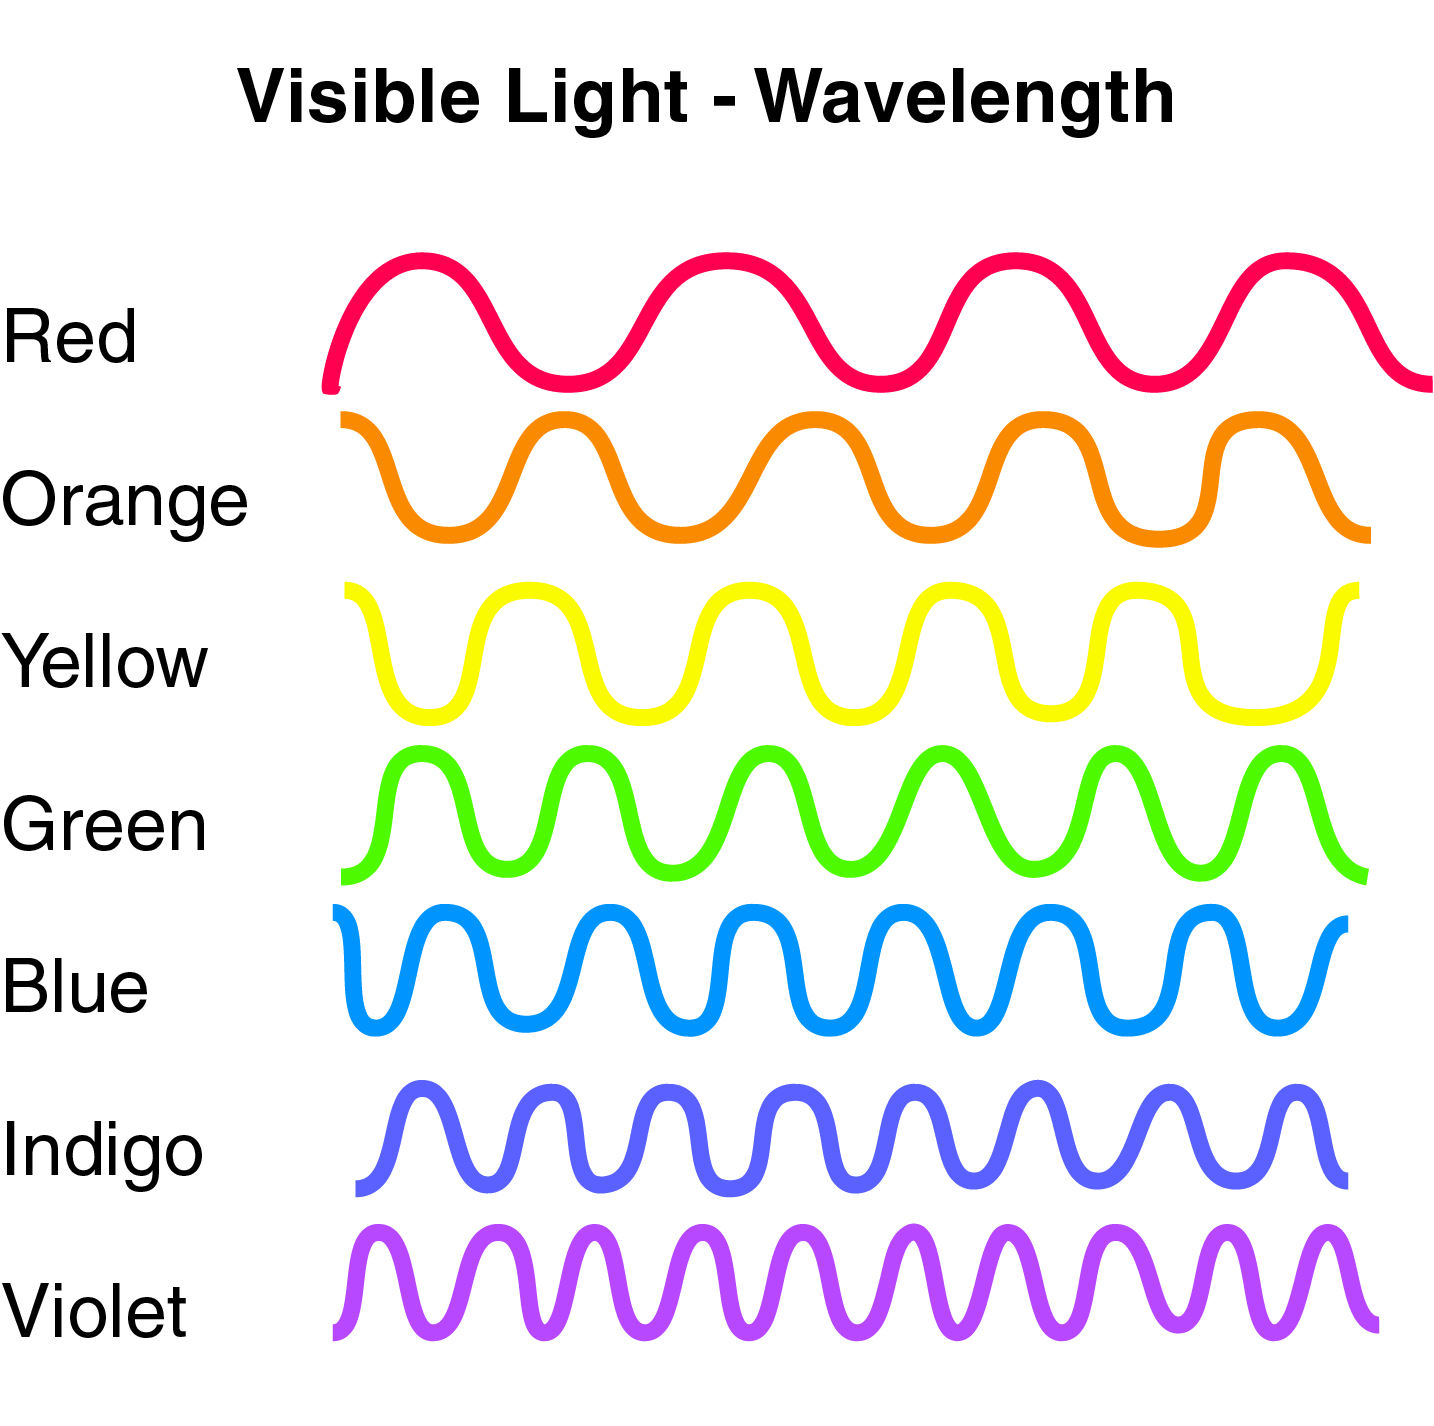 visible specter blue light wavelengths visible light protection filter eye health